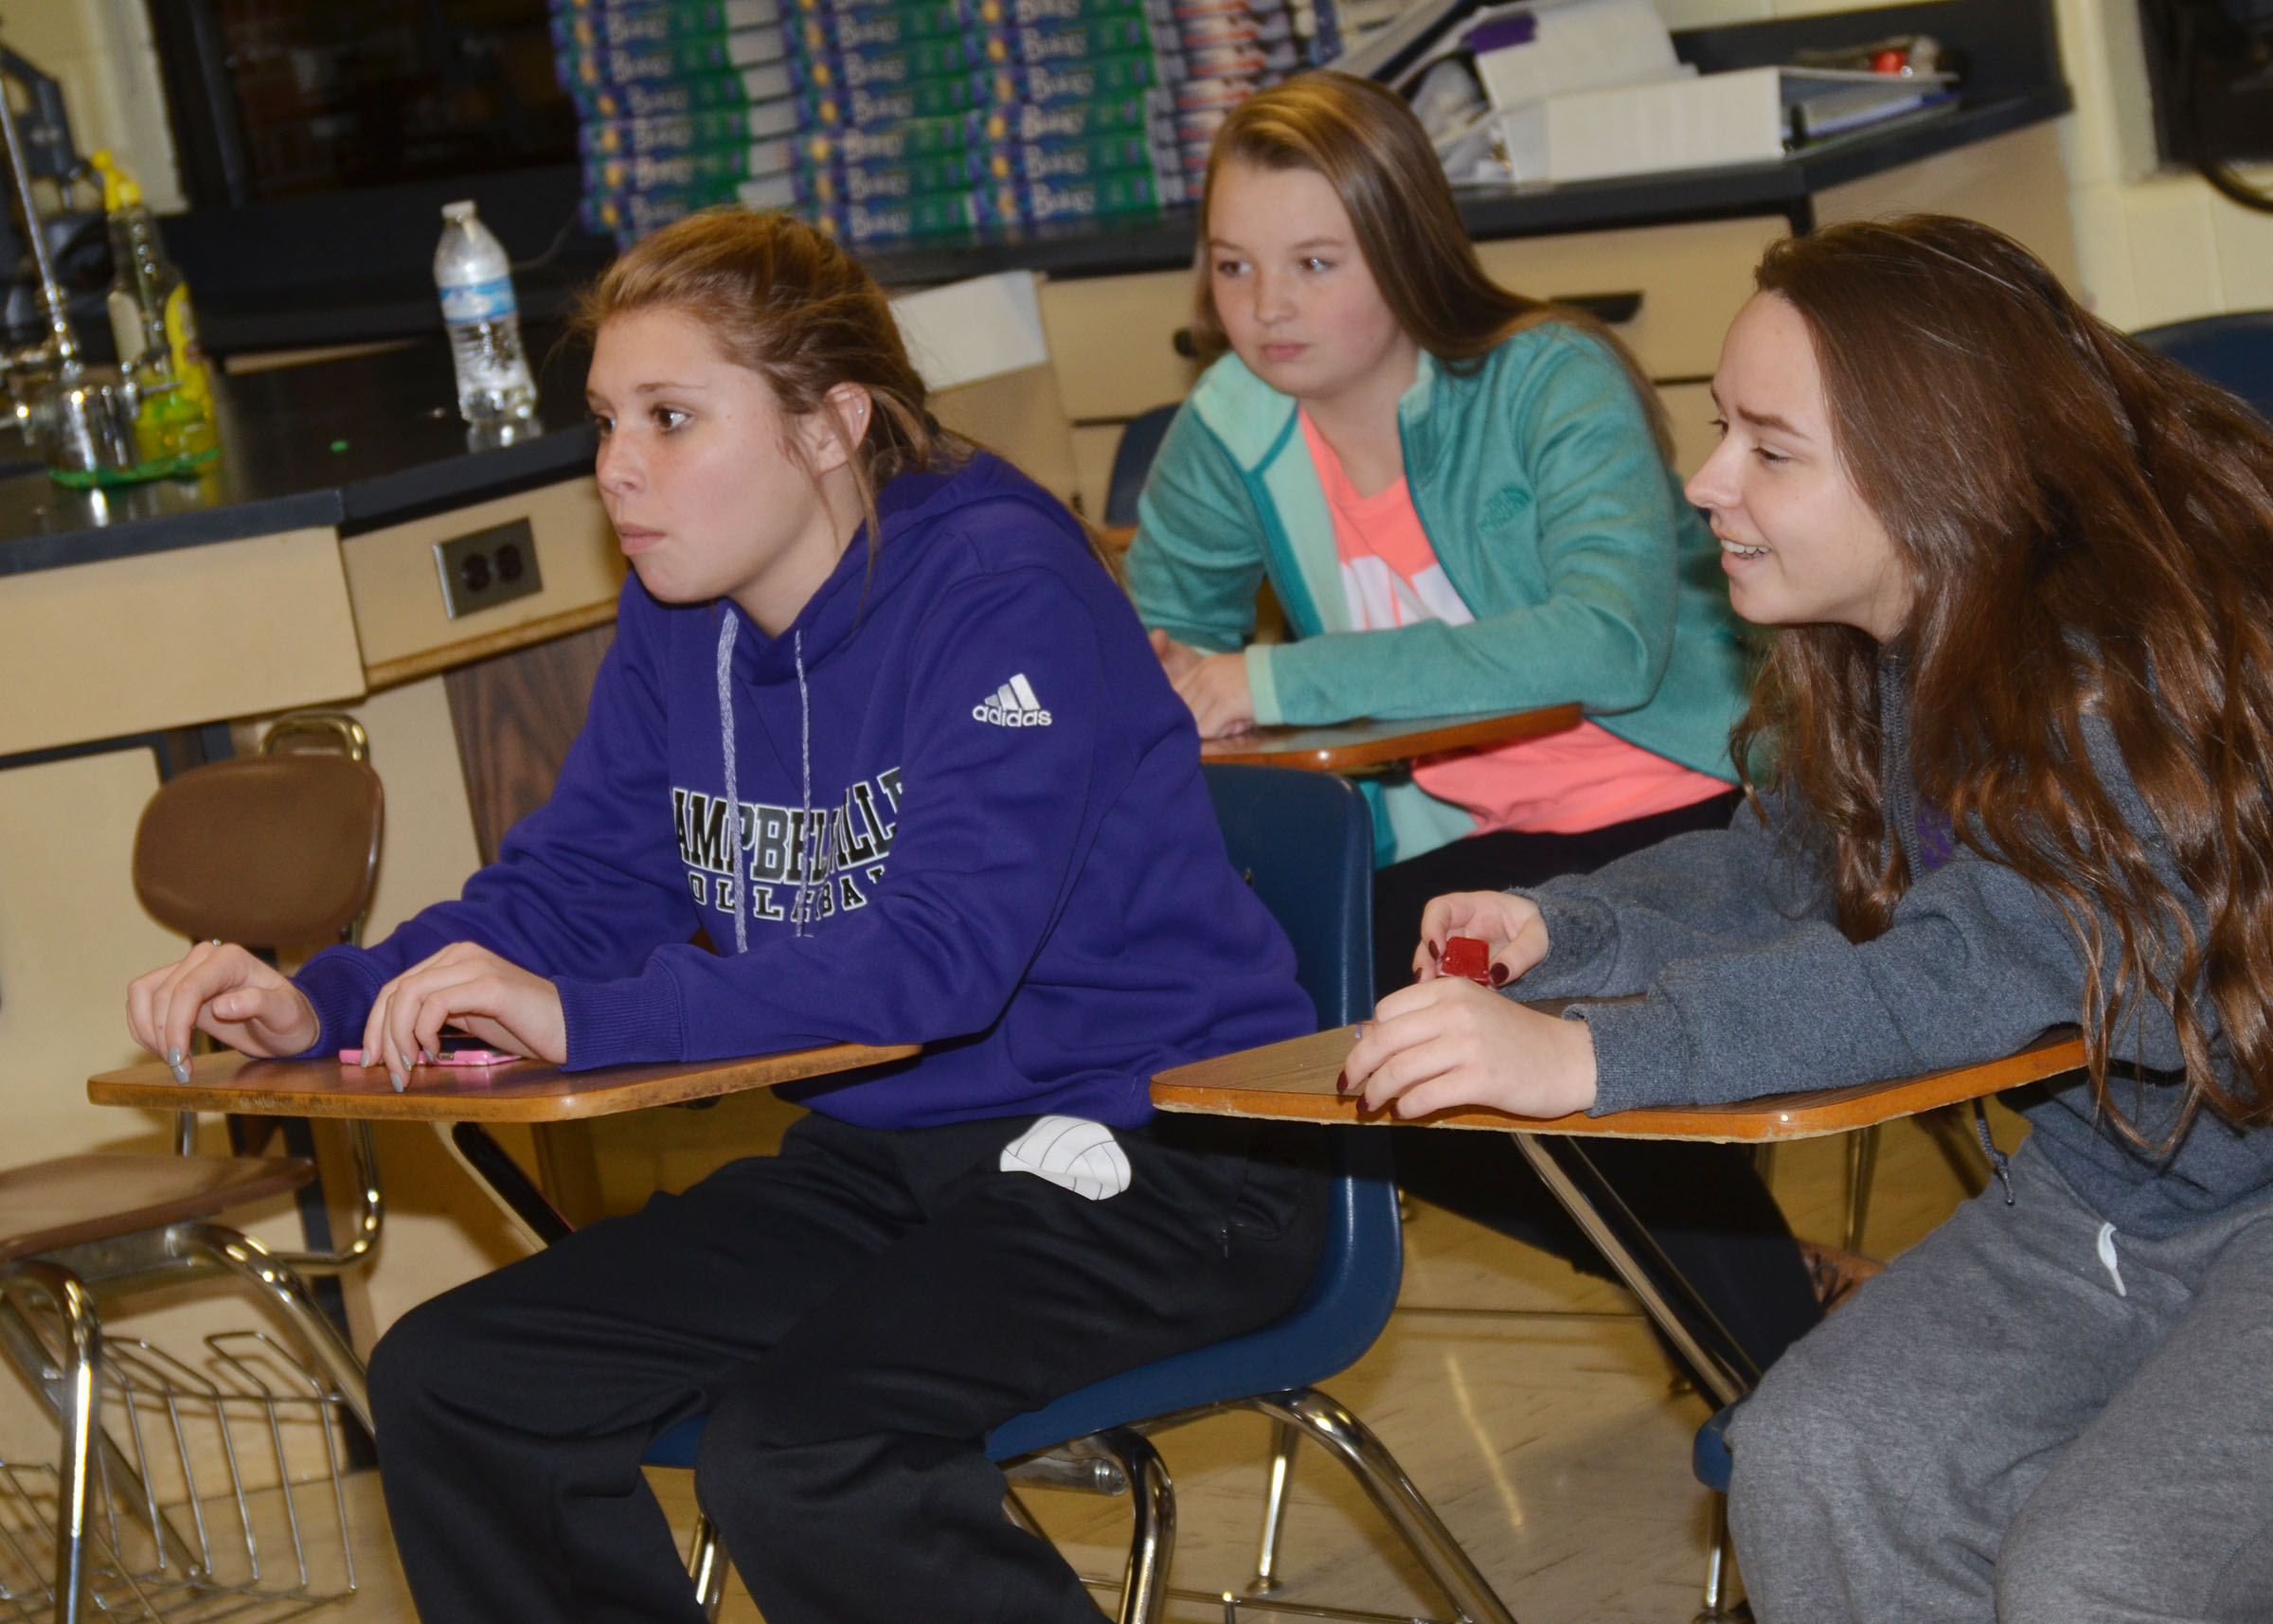 CHS FCA members meet for a small group devotional. From left are sophomores Chloe Gupton, Kaleigh Hunt and Christa Riggs.